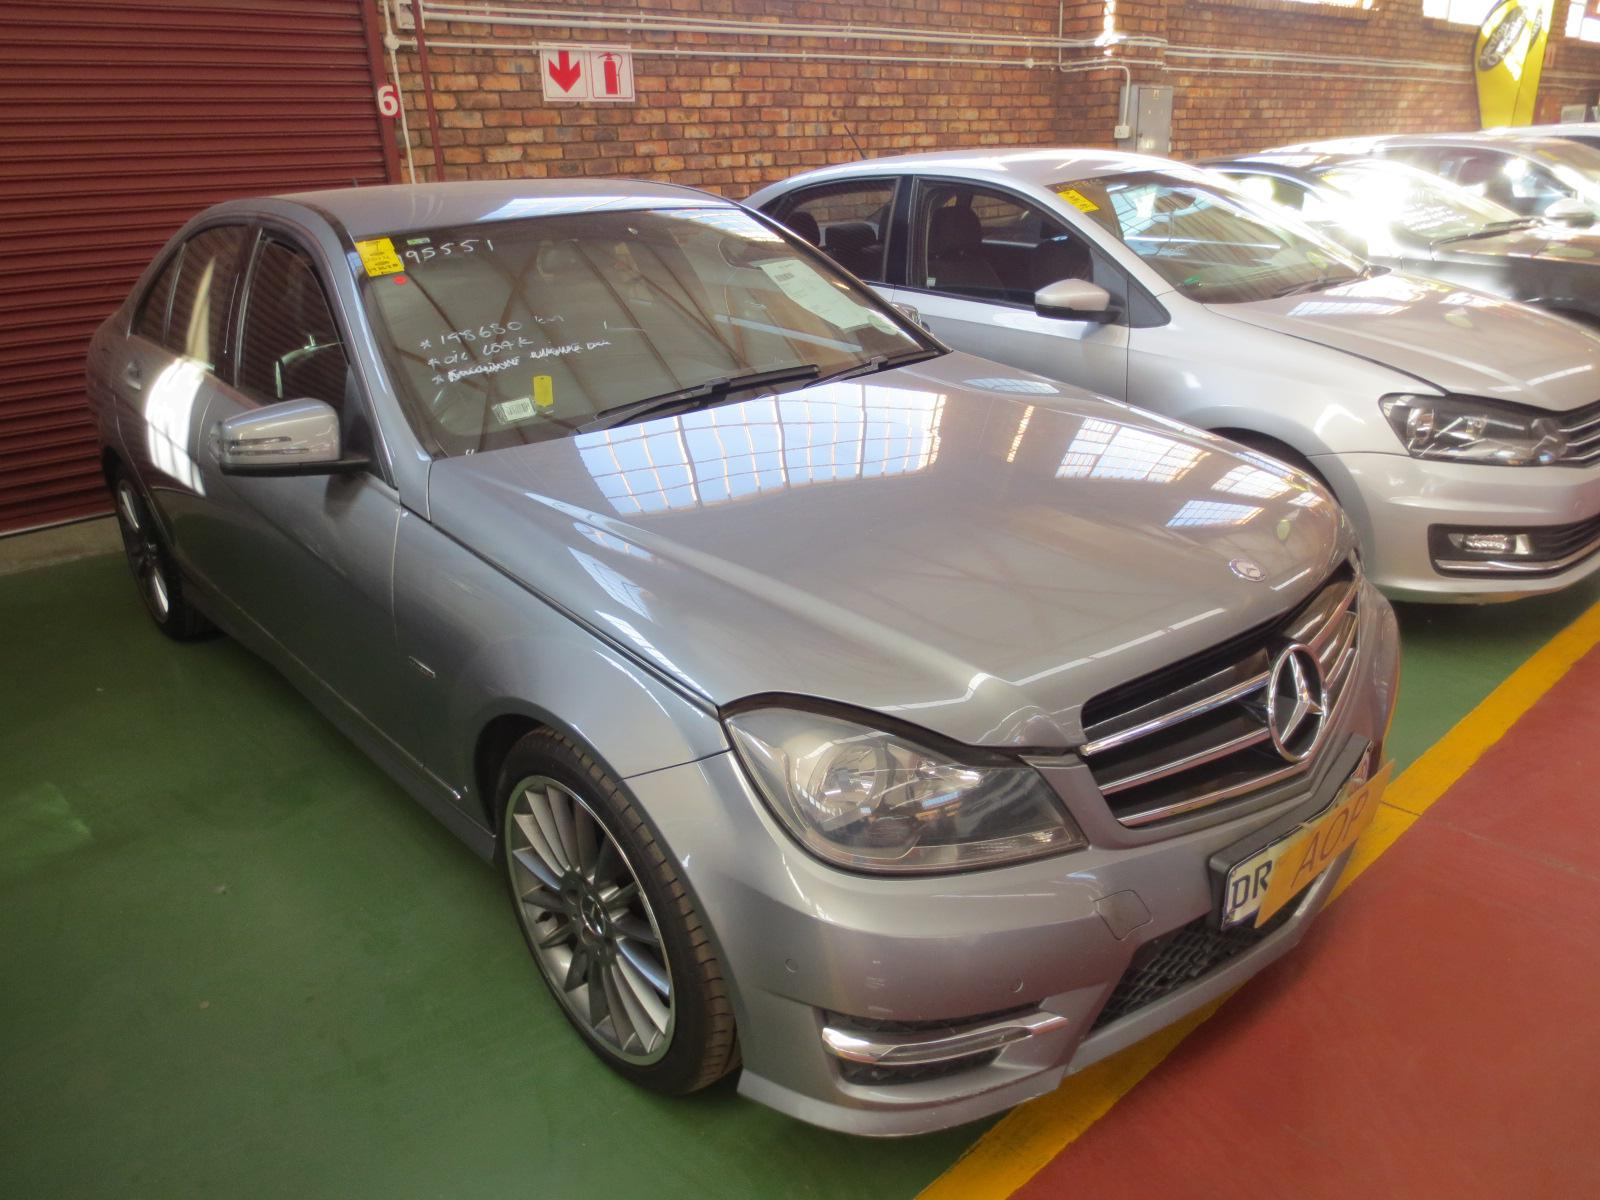 Auction Operation - ABSA REPO VEHICLES - BOKSBURG